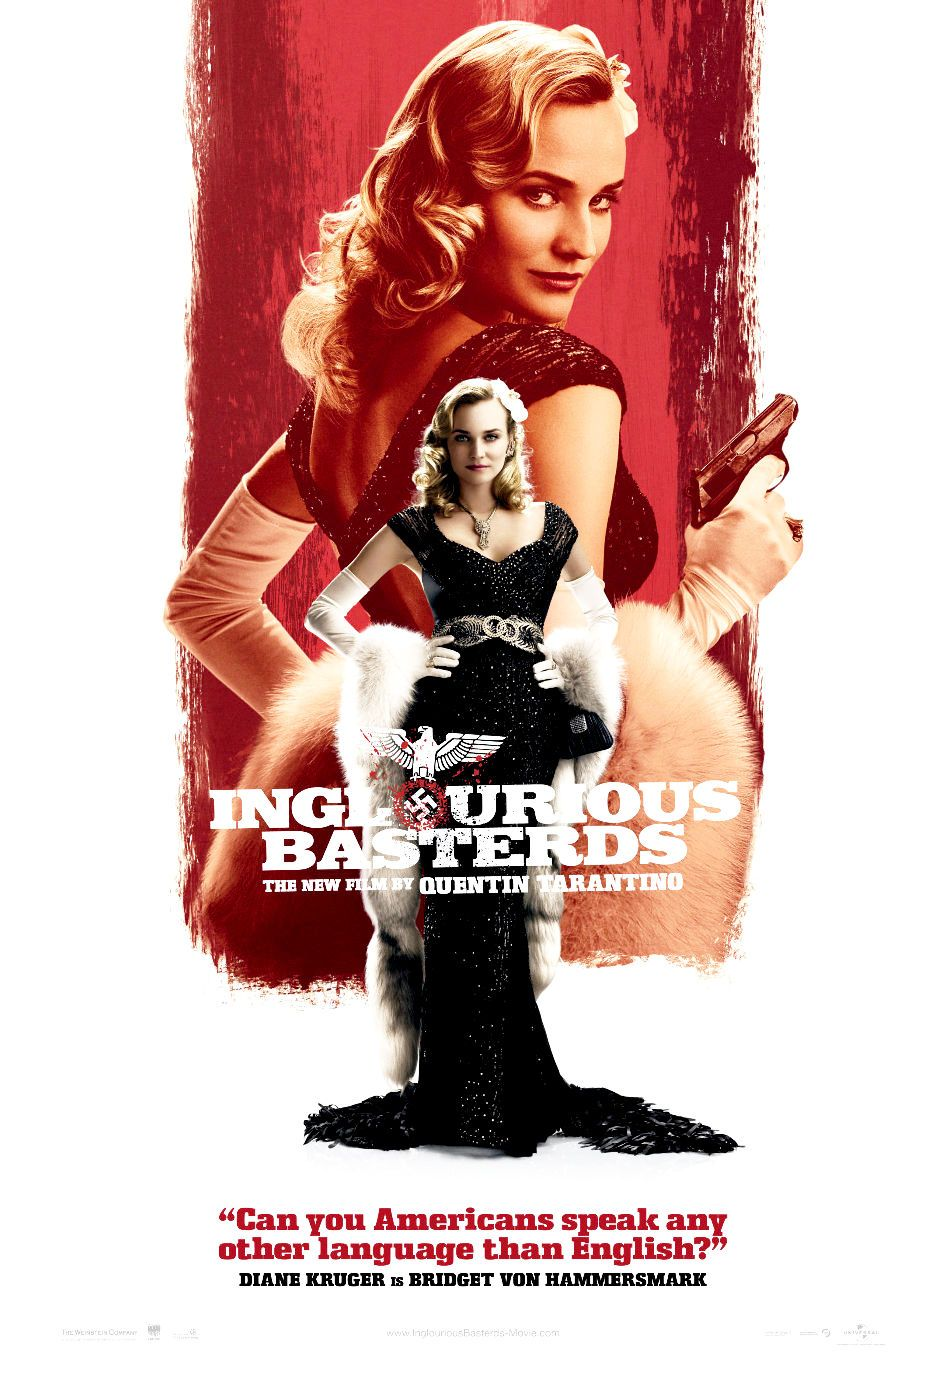 Inglourious Basterds 2009 Movie Posters In 2019 Movie